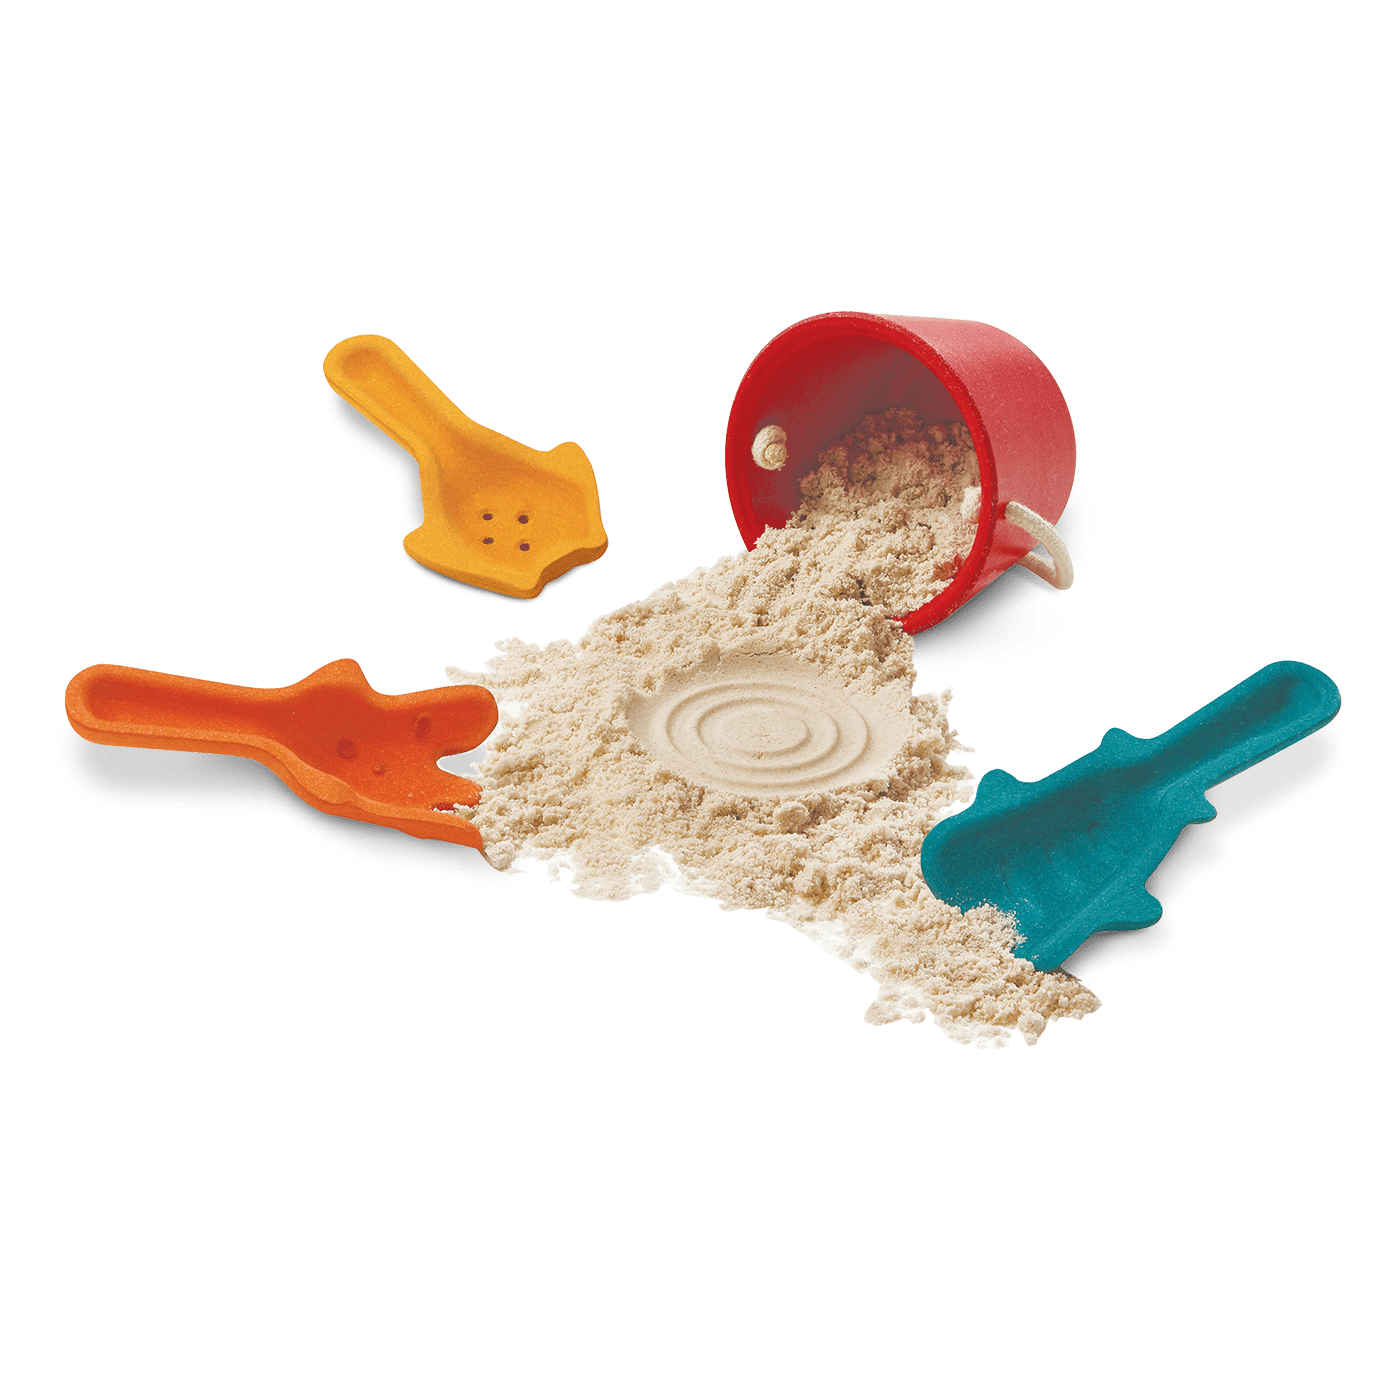 5803_PlanToys_SAND_PLAY_SET_Water_Play_Coordination_Creative_Tactile_Fine_Motor_Imagination_3yrs_Wooden_toys_Education_toys_Safety_Toys_Non-toxic_0.png